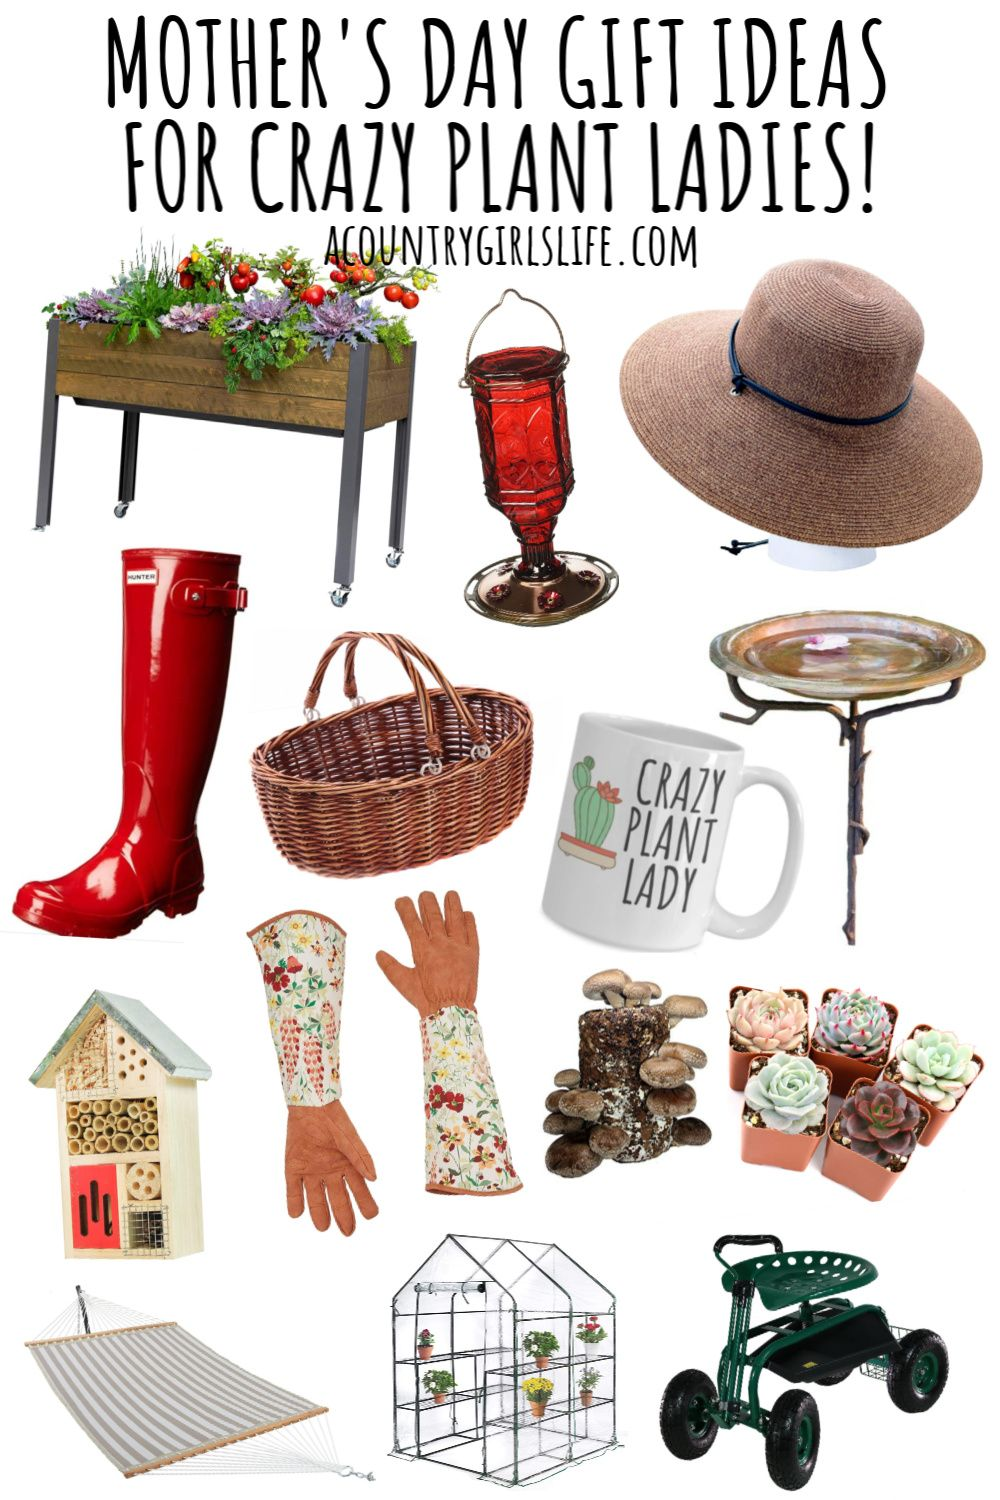 Crazy Plant Lady Gifts 51 No Fail Gift Ideas for